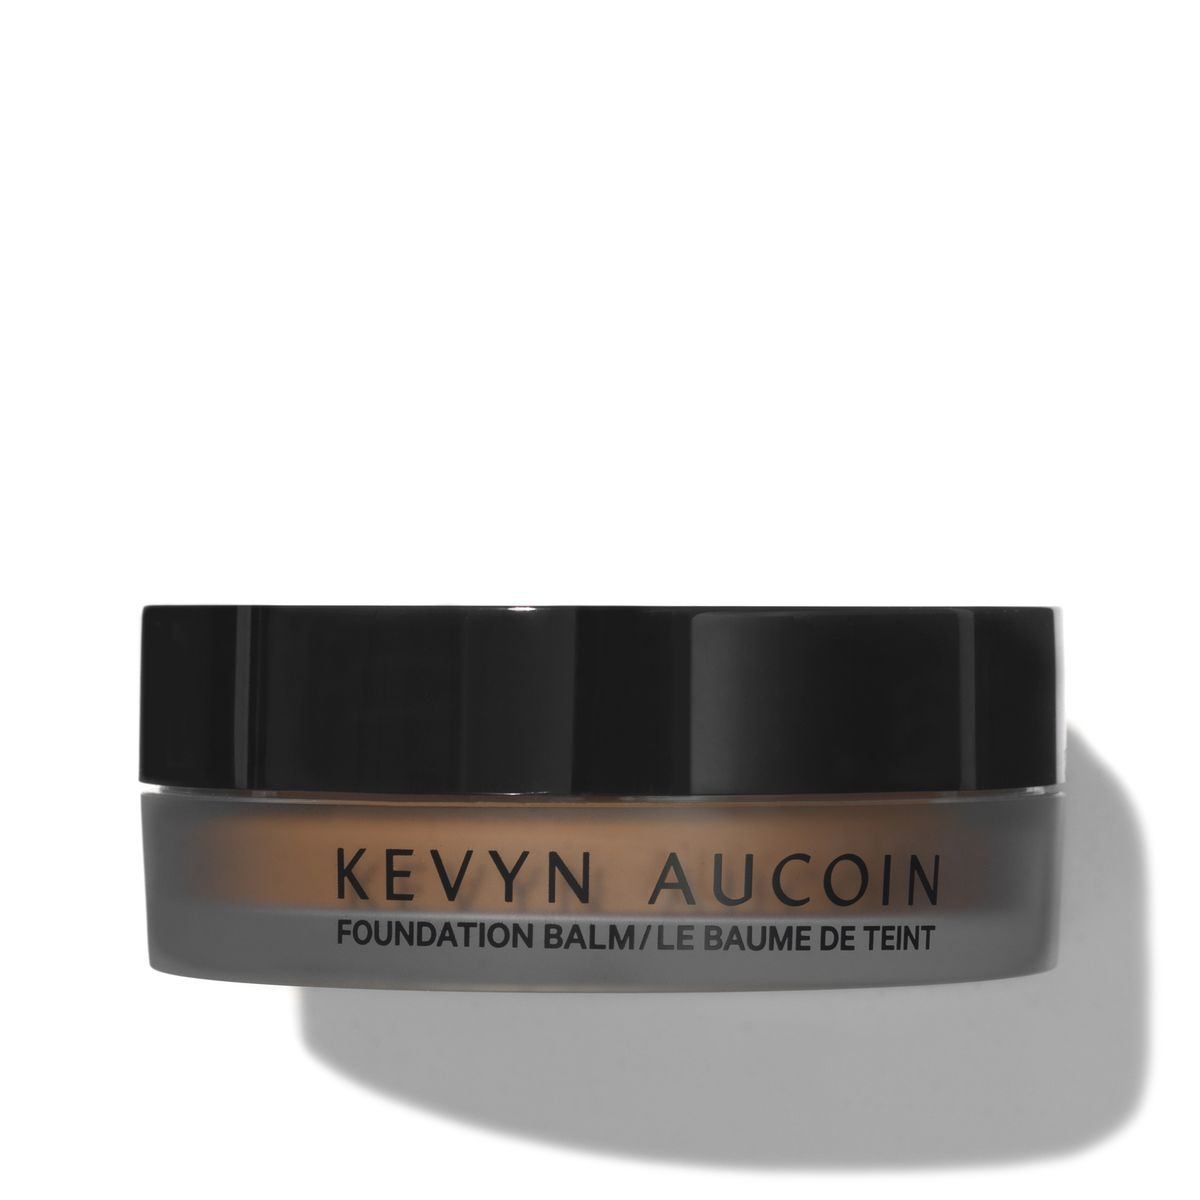 You had me at 'balm' - KEVYN AUCOIN Foundation Balm applied with a brush for a flawless finish